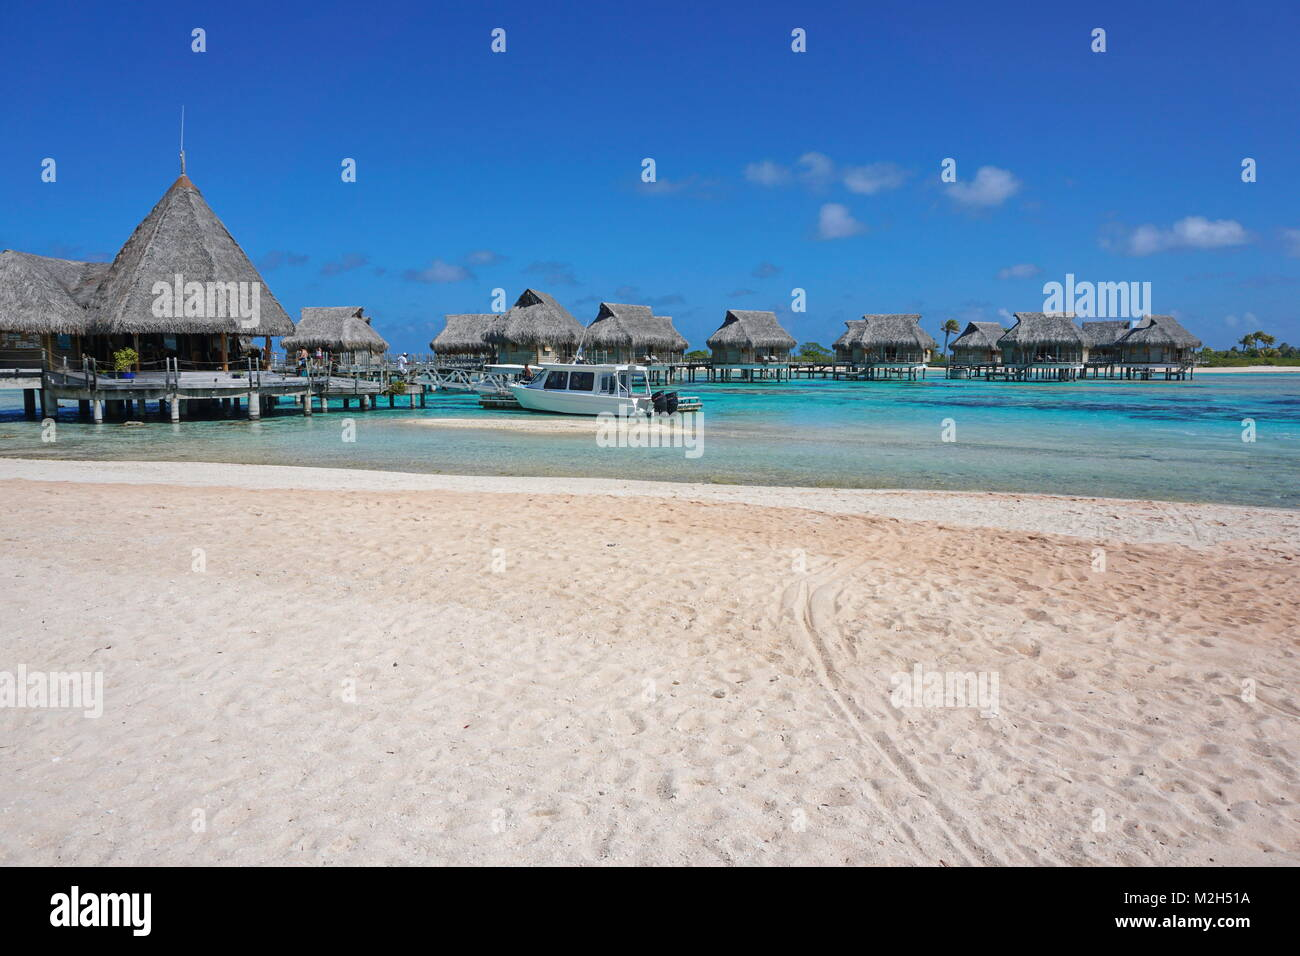 Tropical resort, beach sand with thatched bungalows over water in the lagoon, Tikehau atoll, Tuamotus, French Polynesia, - Stock Image